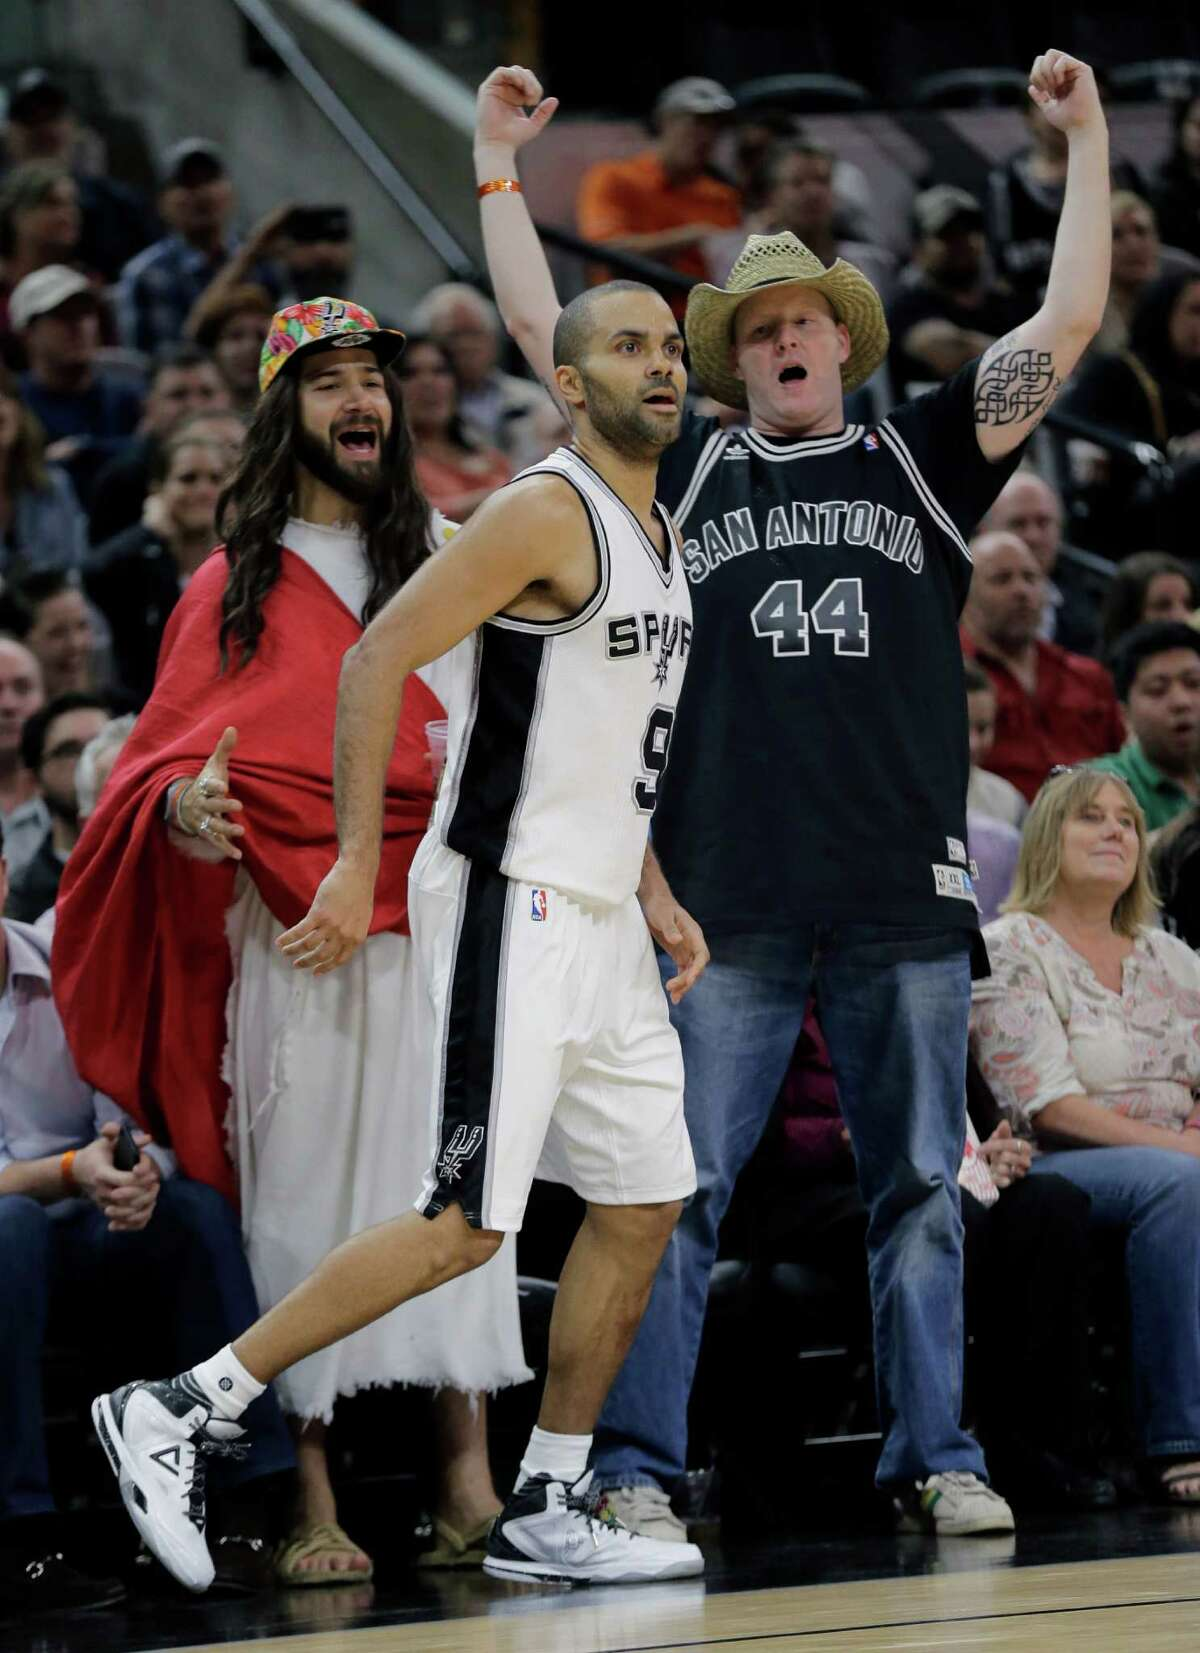 San Antonio Spurs' Tony Parker (9) watches his shot against the Portland Trail Blazers as San Antonio Spurs fans cheer behind him during the second half of an NBA basketball game against the Portland Trail Blazers, Monday, Nov. 16, 2015, in San Antonio. San Antonio Spurs won 93-80. (AP Photo/Eric Gay)